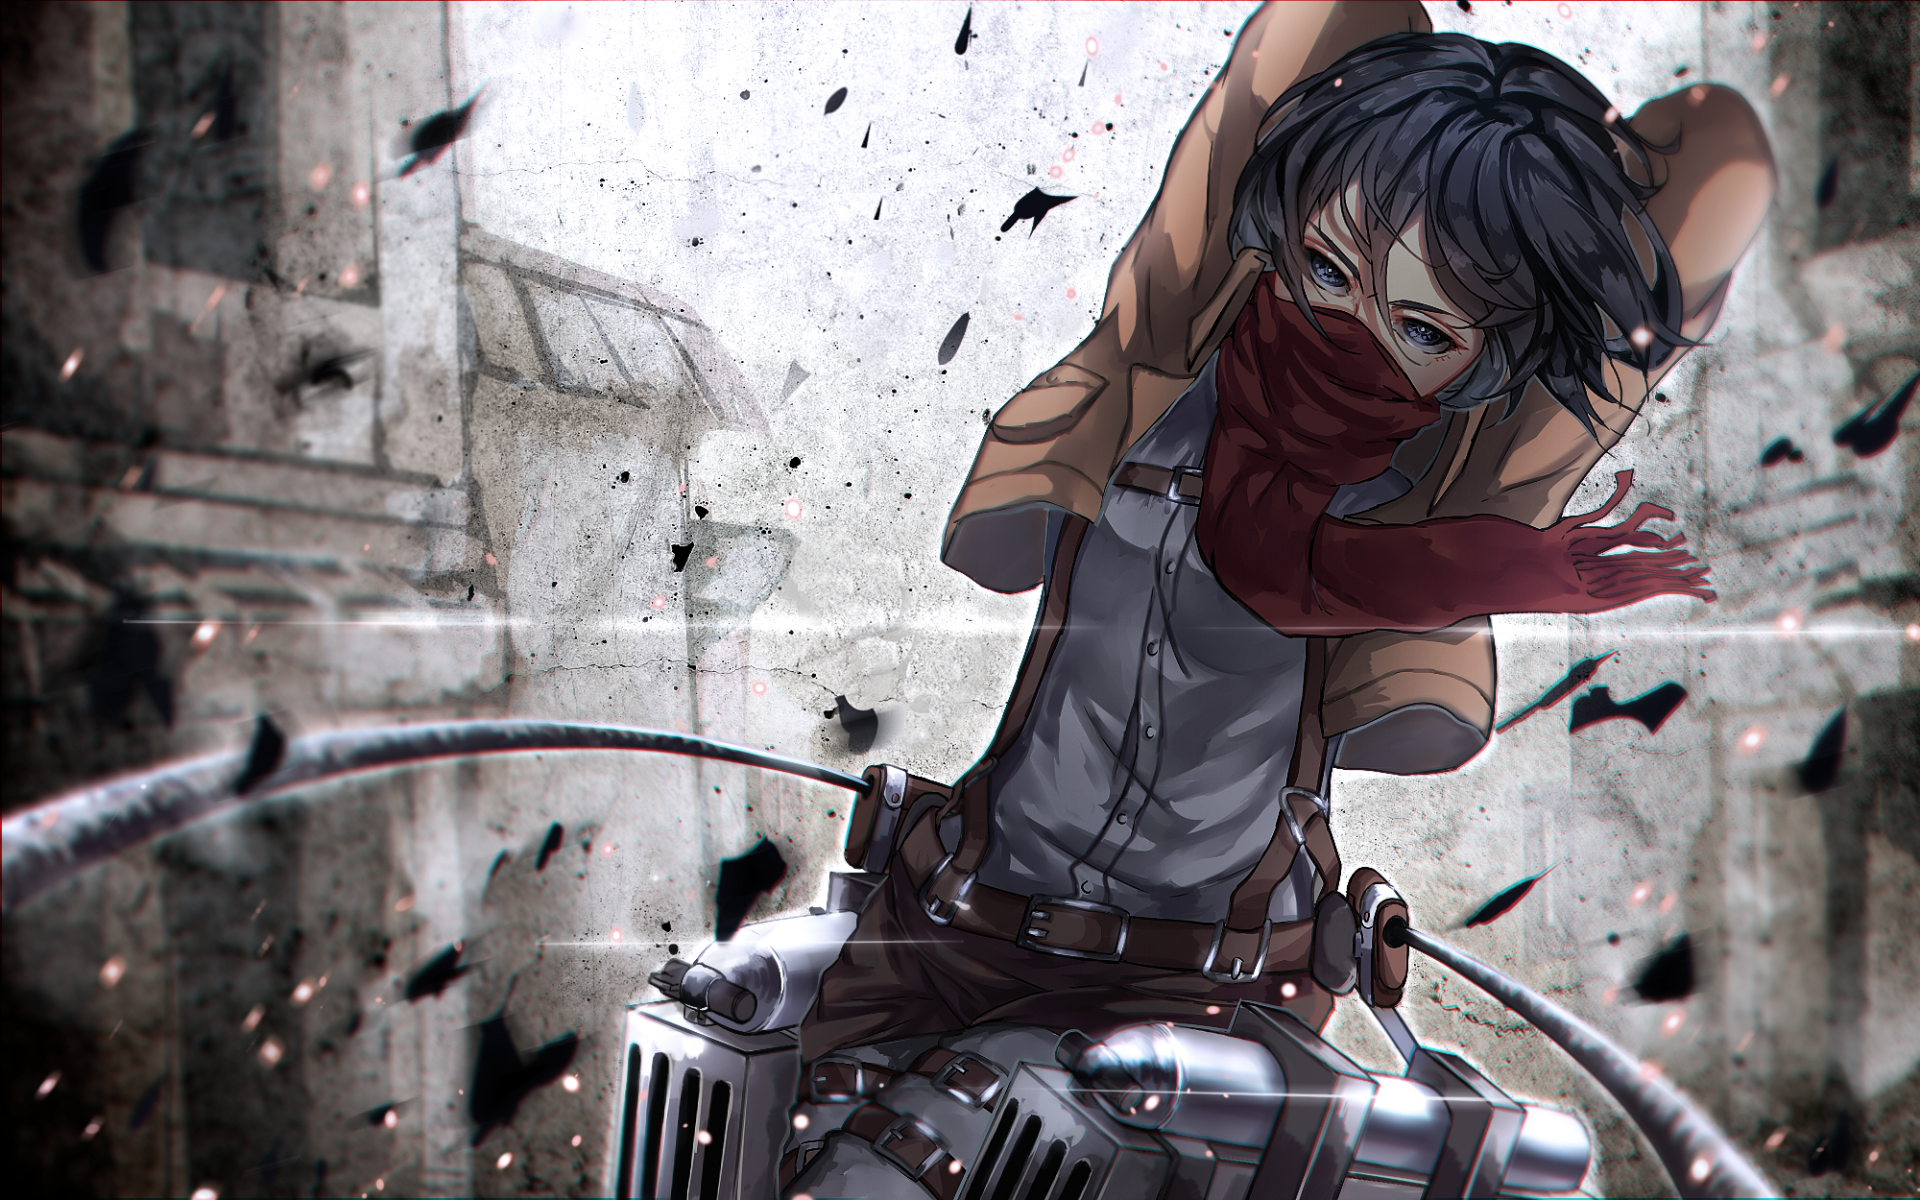 2000x1250 Attack On Titan Wallpaper Background Image View Download Comment And Rate Wallpaper Attack On Titan Anime Attack On Titan Attack On Titan Eren